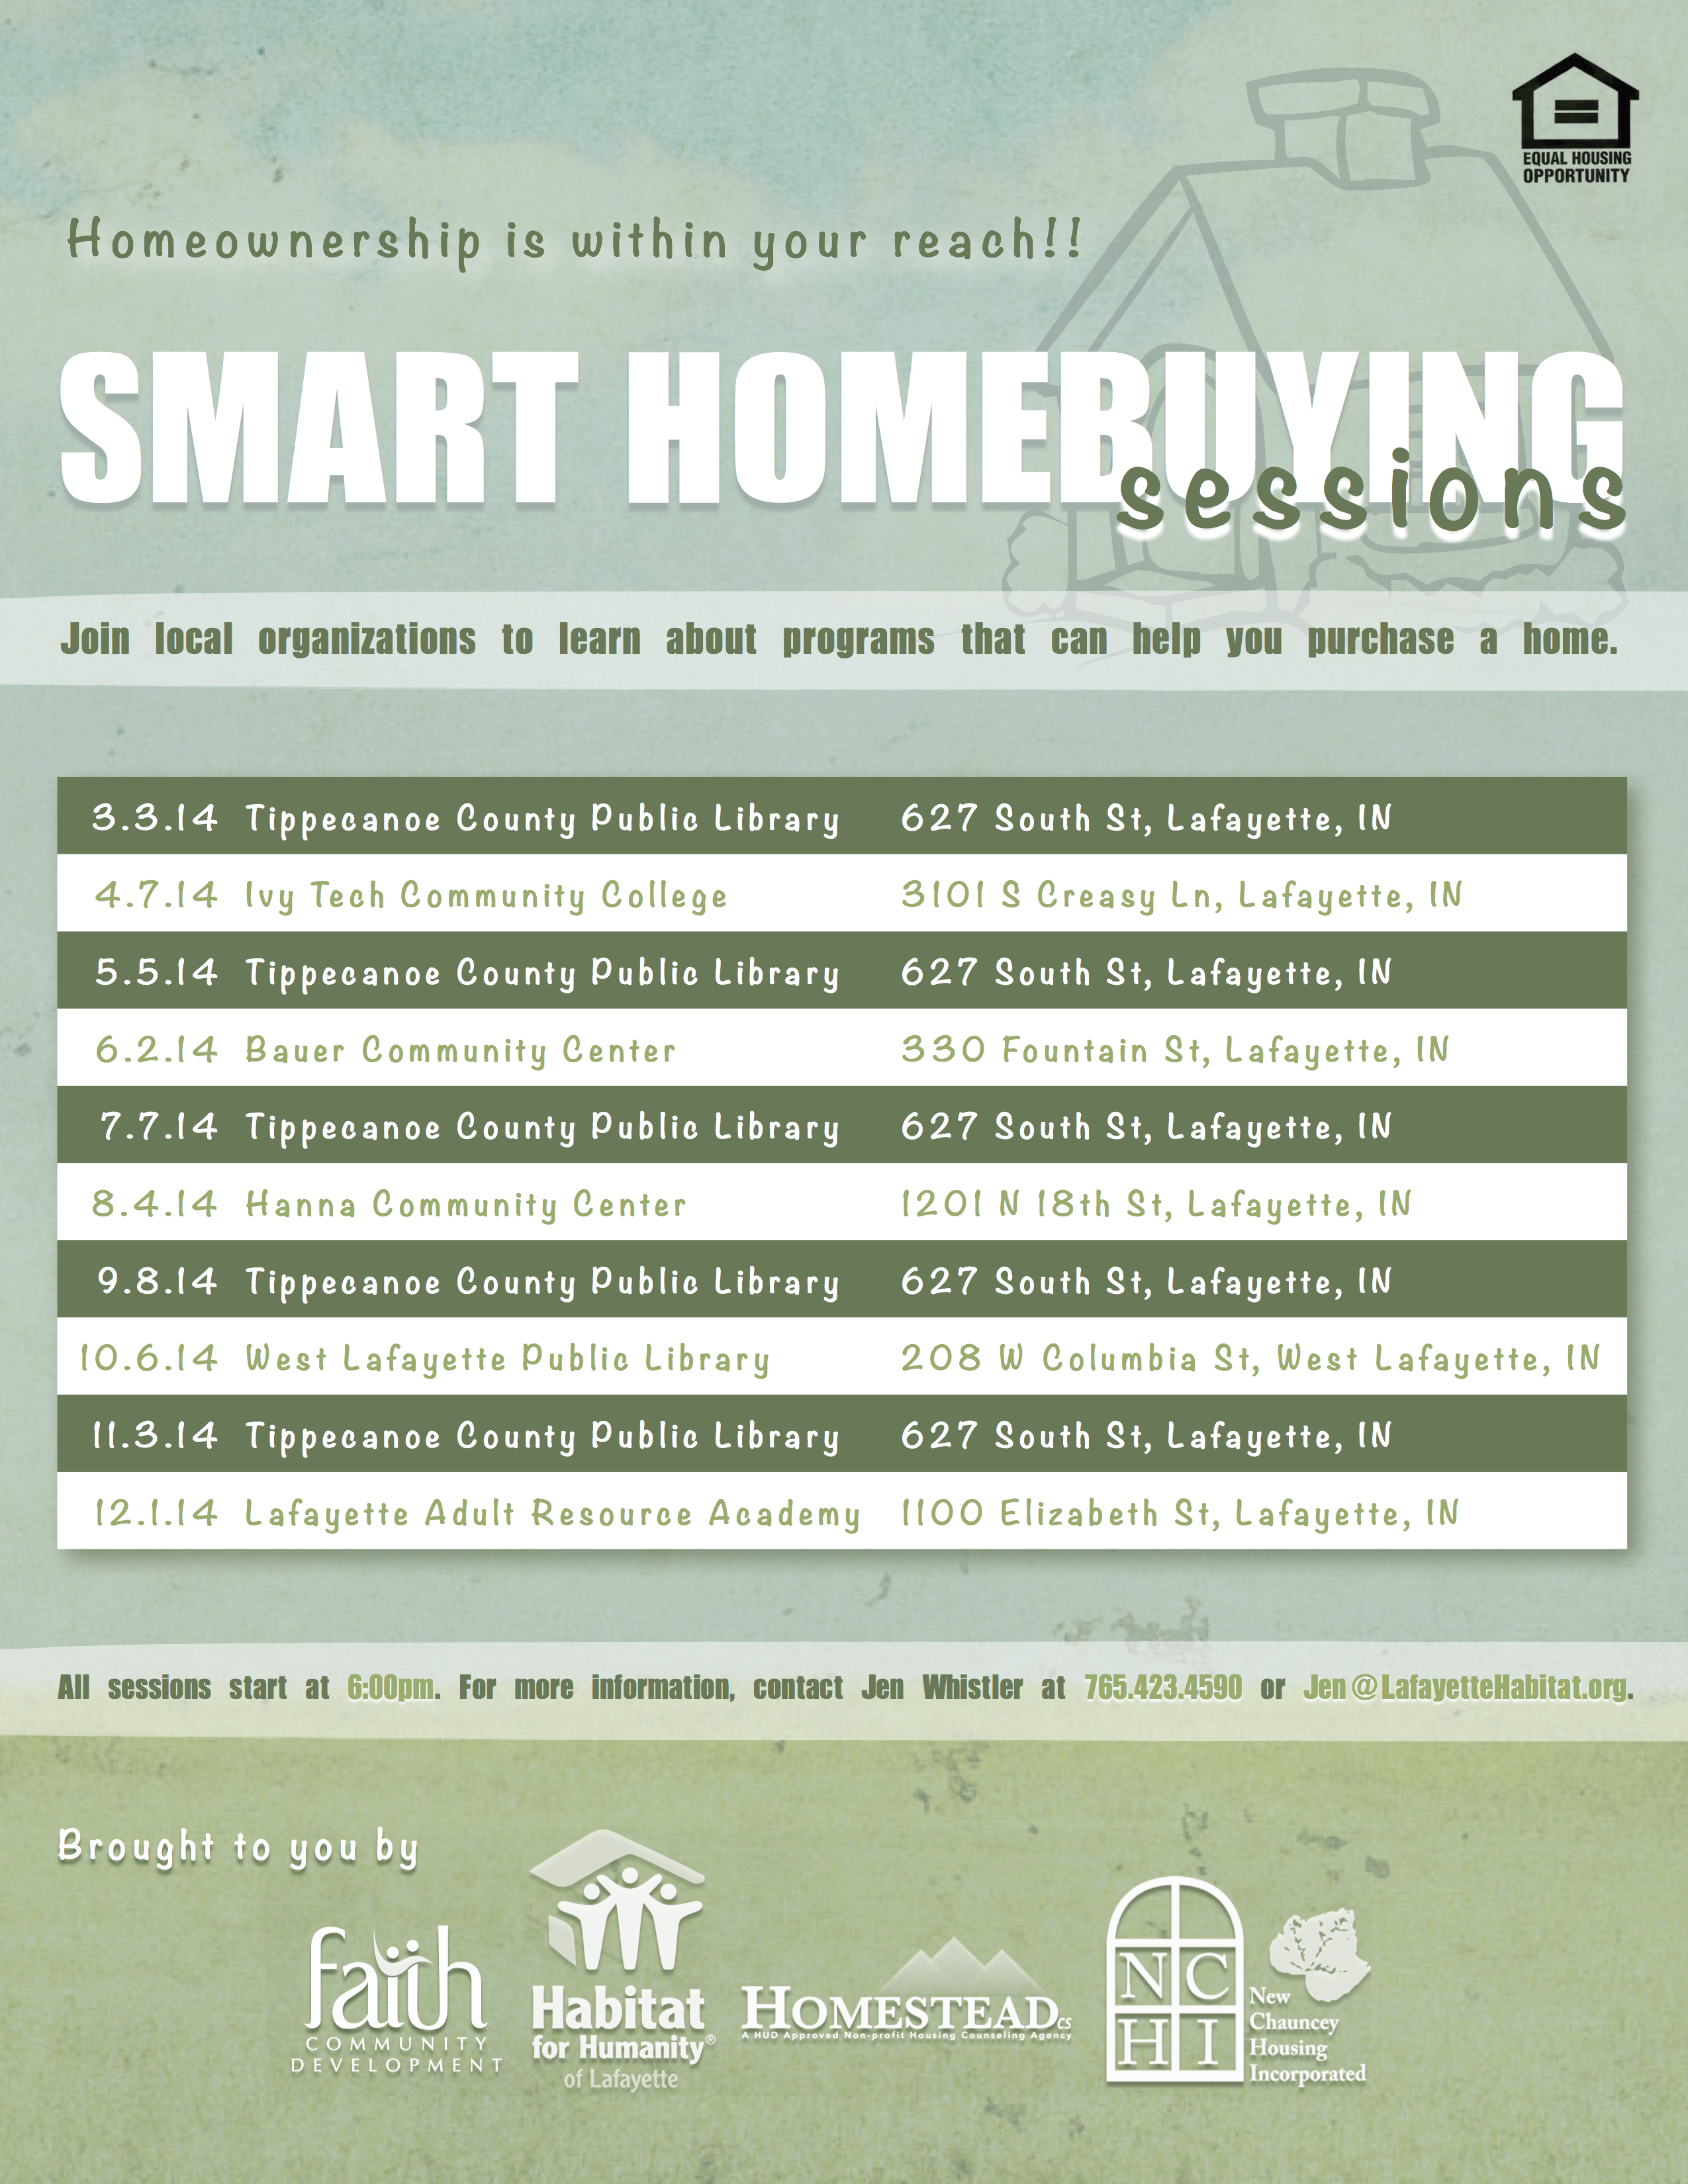 Smart Homebuying Sessions put homeownership within your reach!